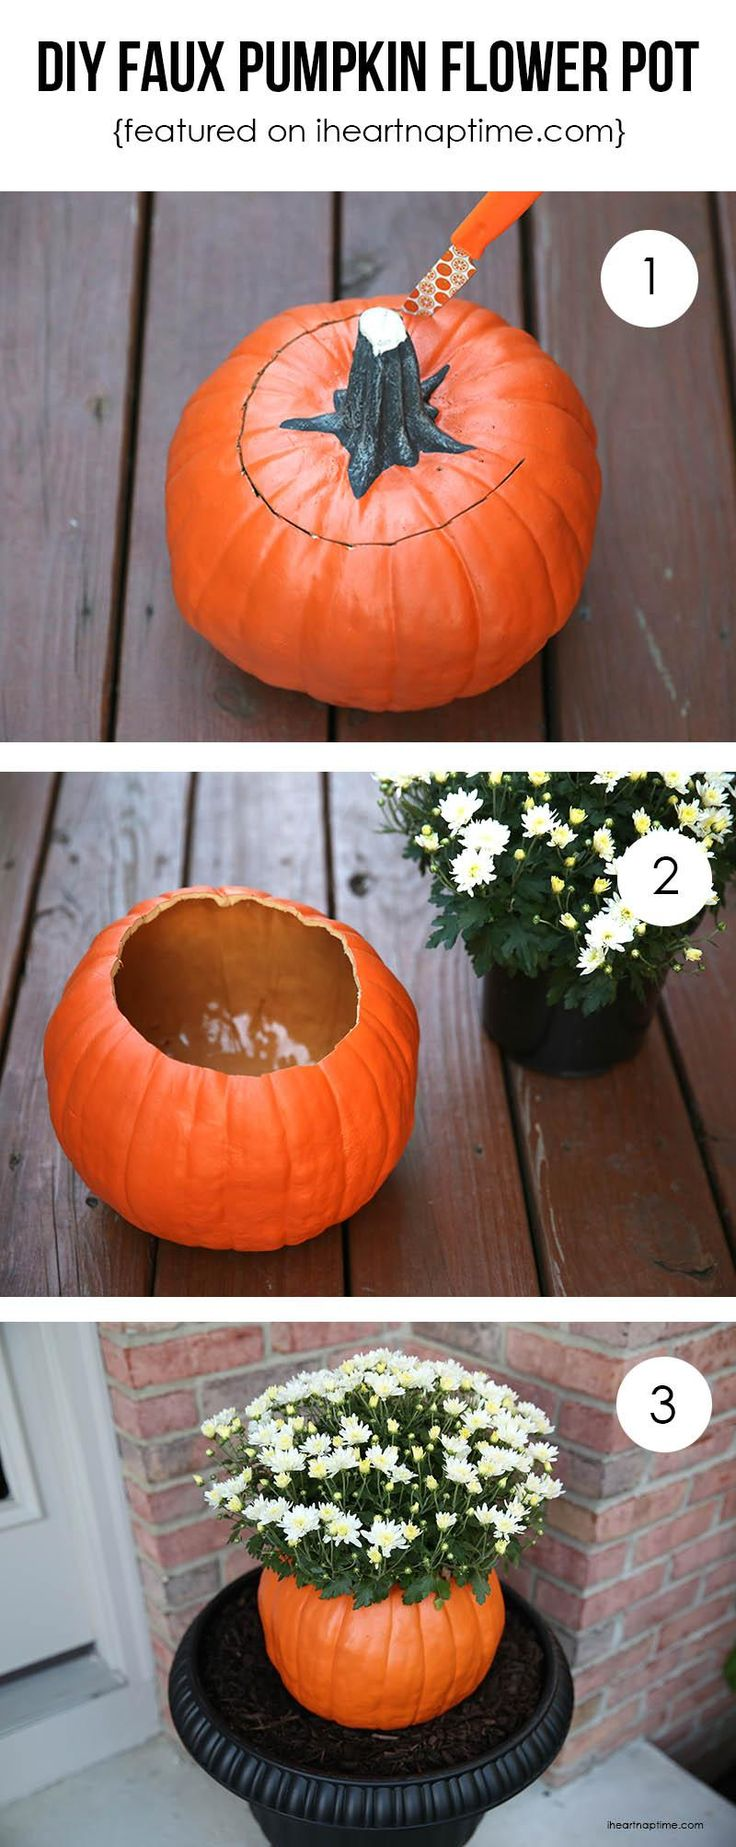 DIY faux pumpkin flower pot tutorial on iheartnaptime.com #fall